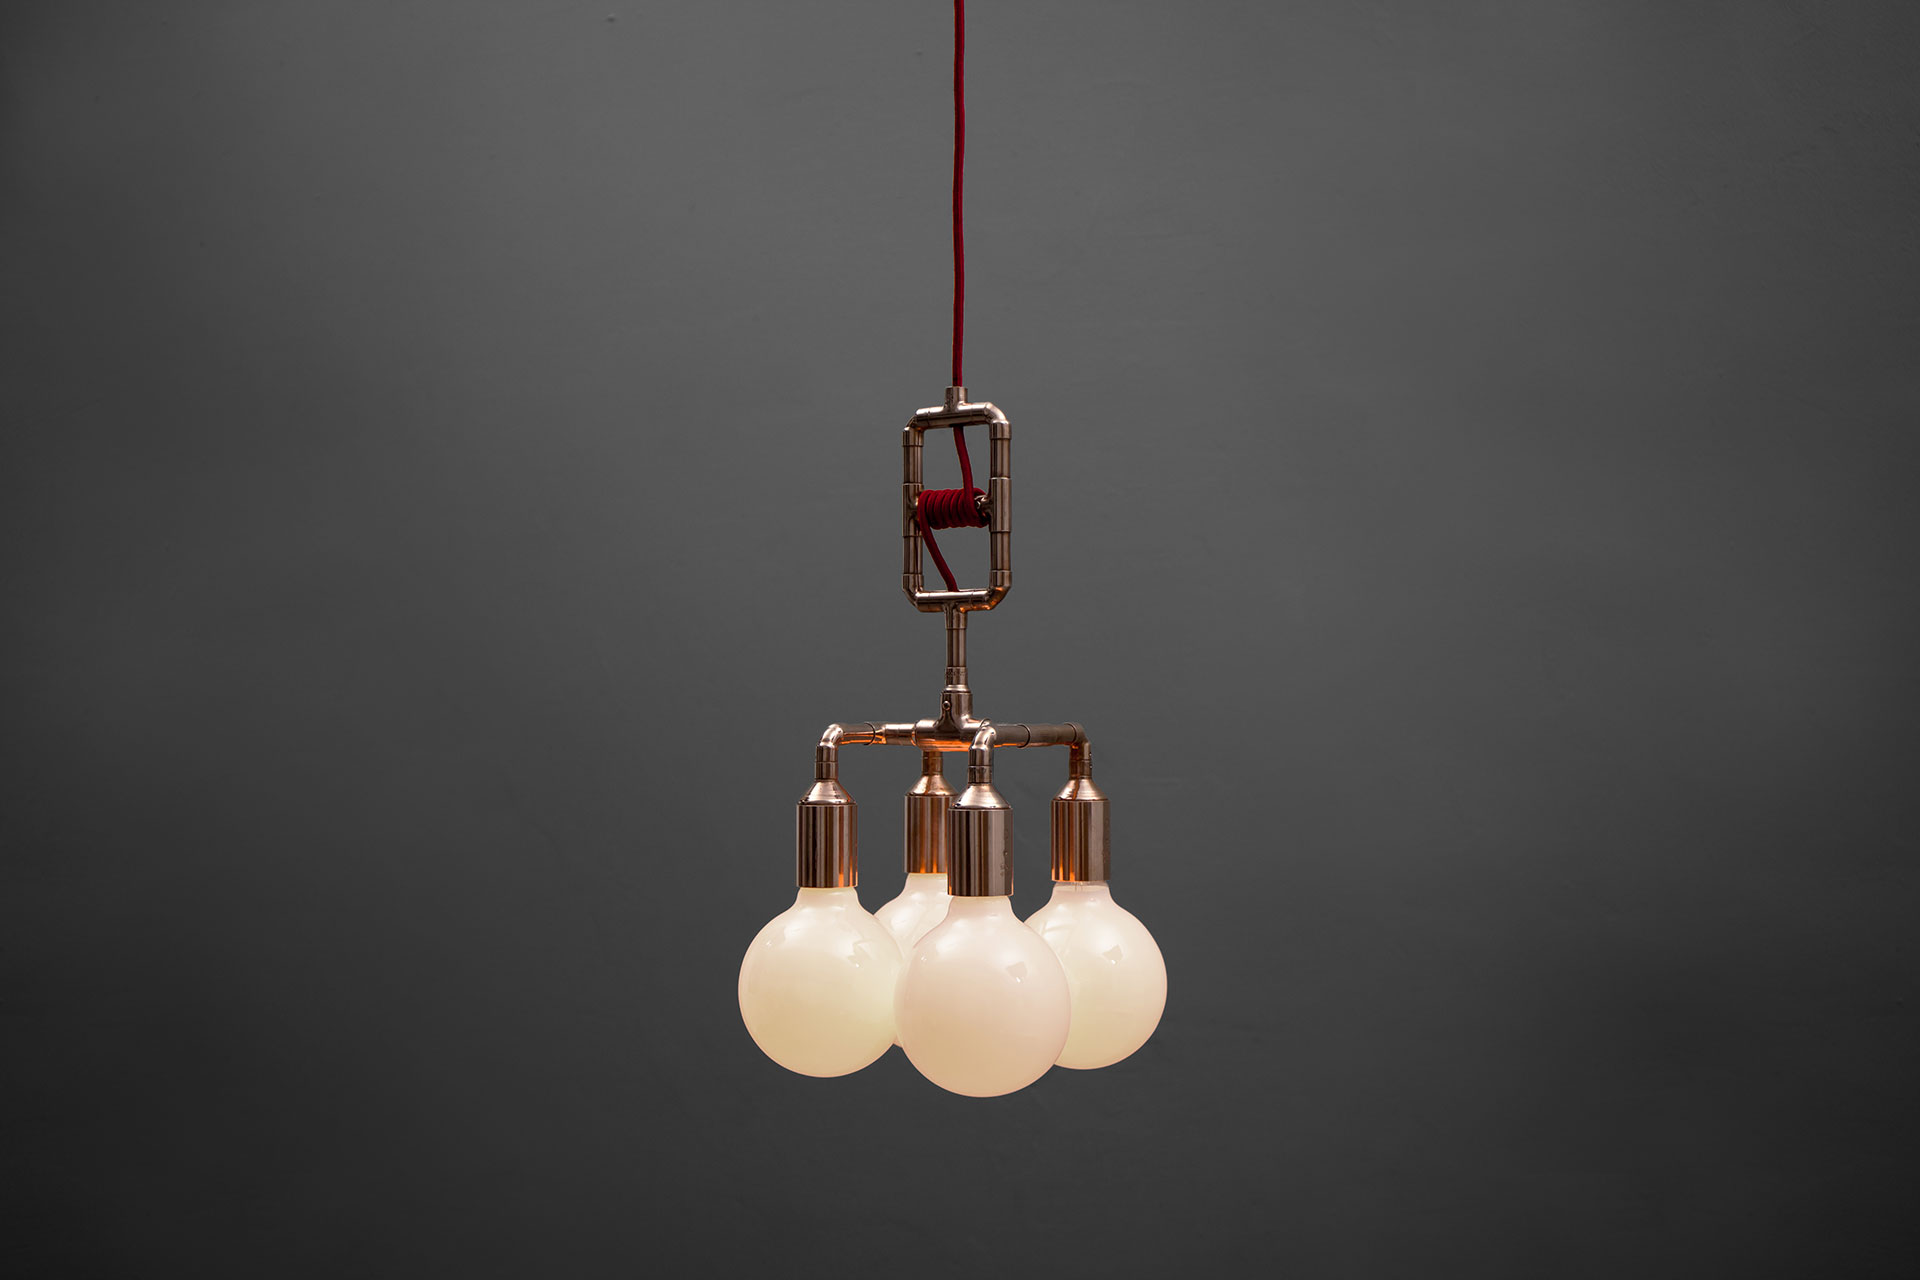 Adjustable height pendant lamp in copper or brass inspired by loft design